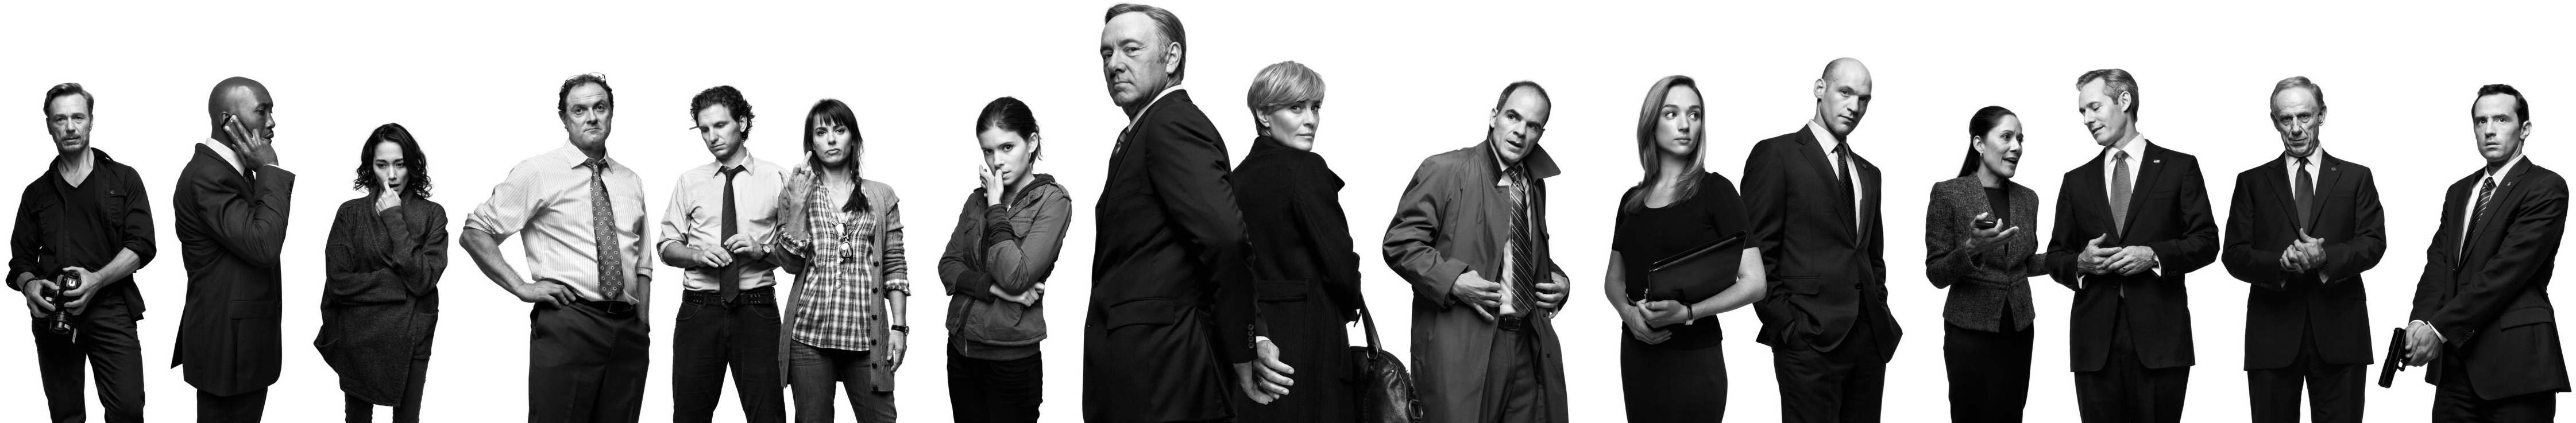 claire underwood house of cards wiki. Black Bedroom Furniture Sets. Home Design Ideas